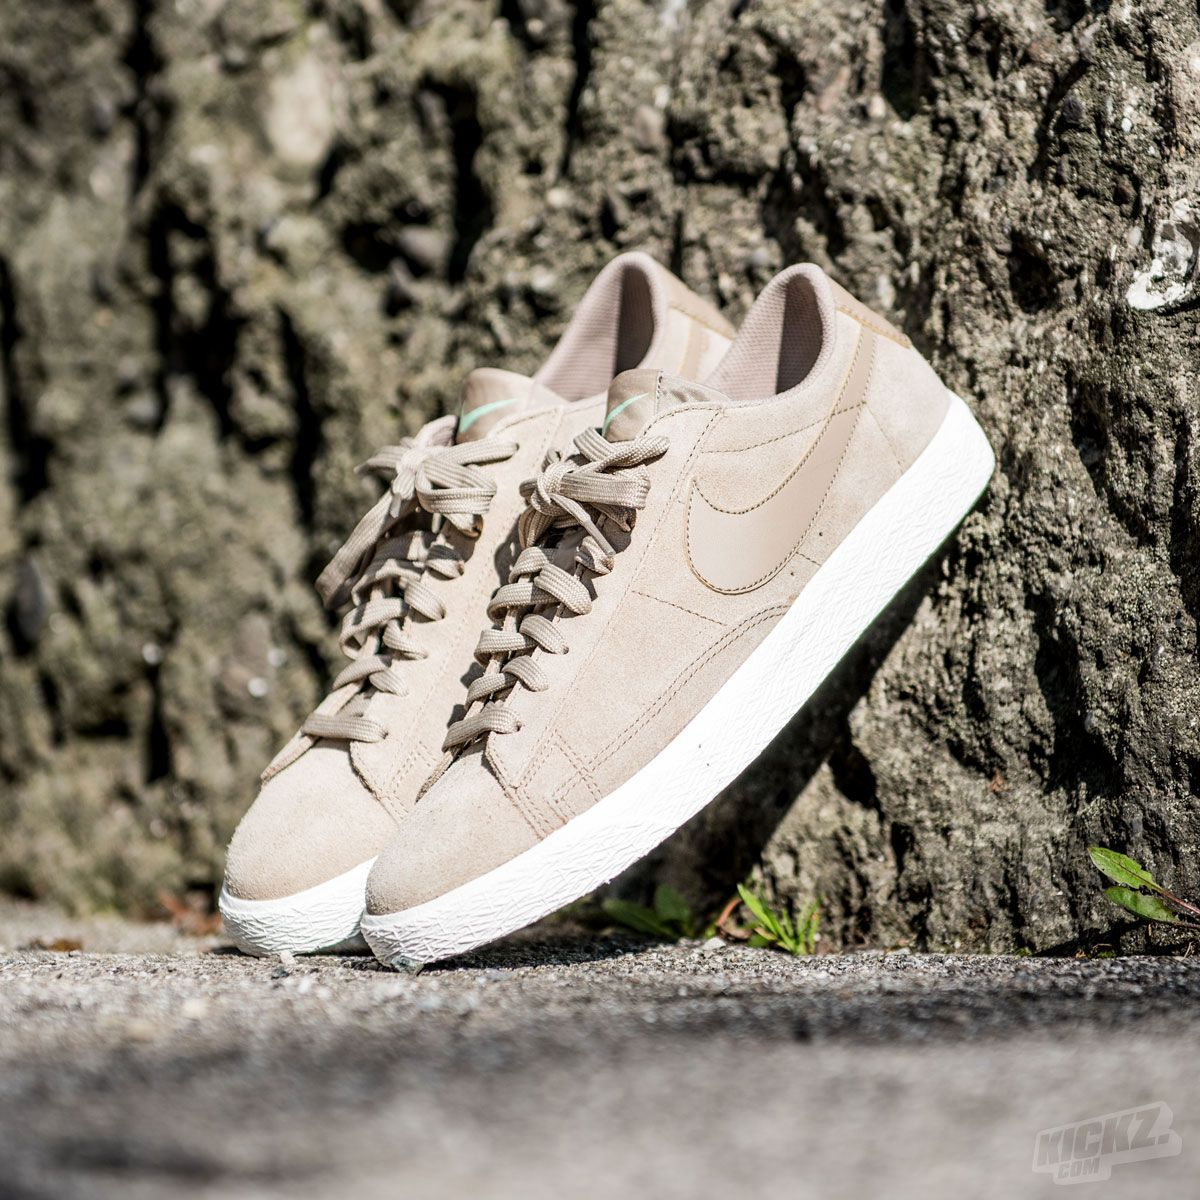 hot sale online 402ad 23385 Nike Blazer low suede. The classic look that can never go wrong no matter  what